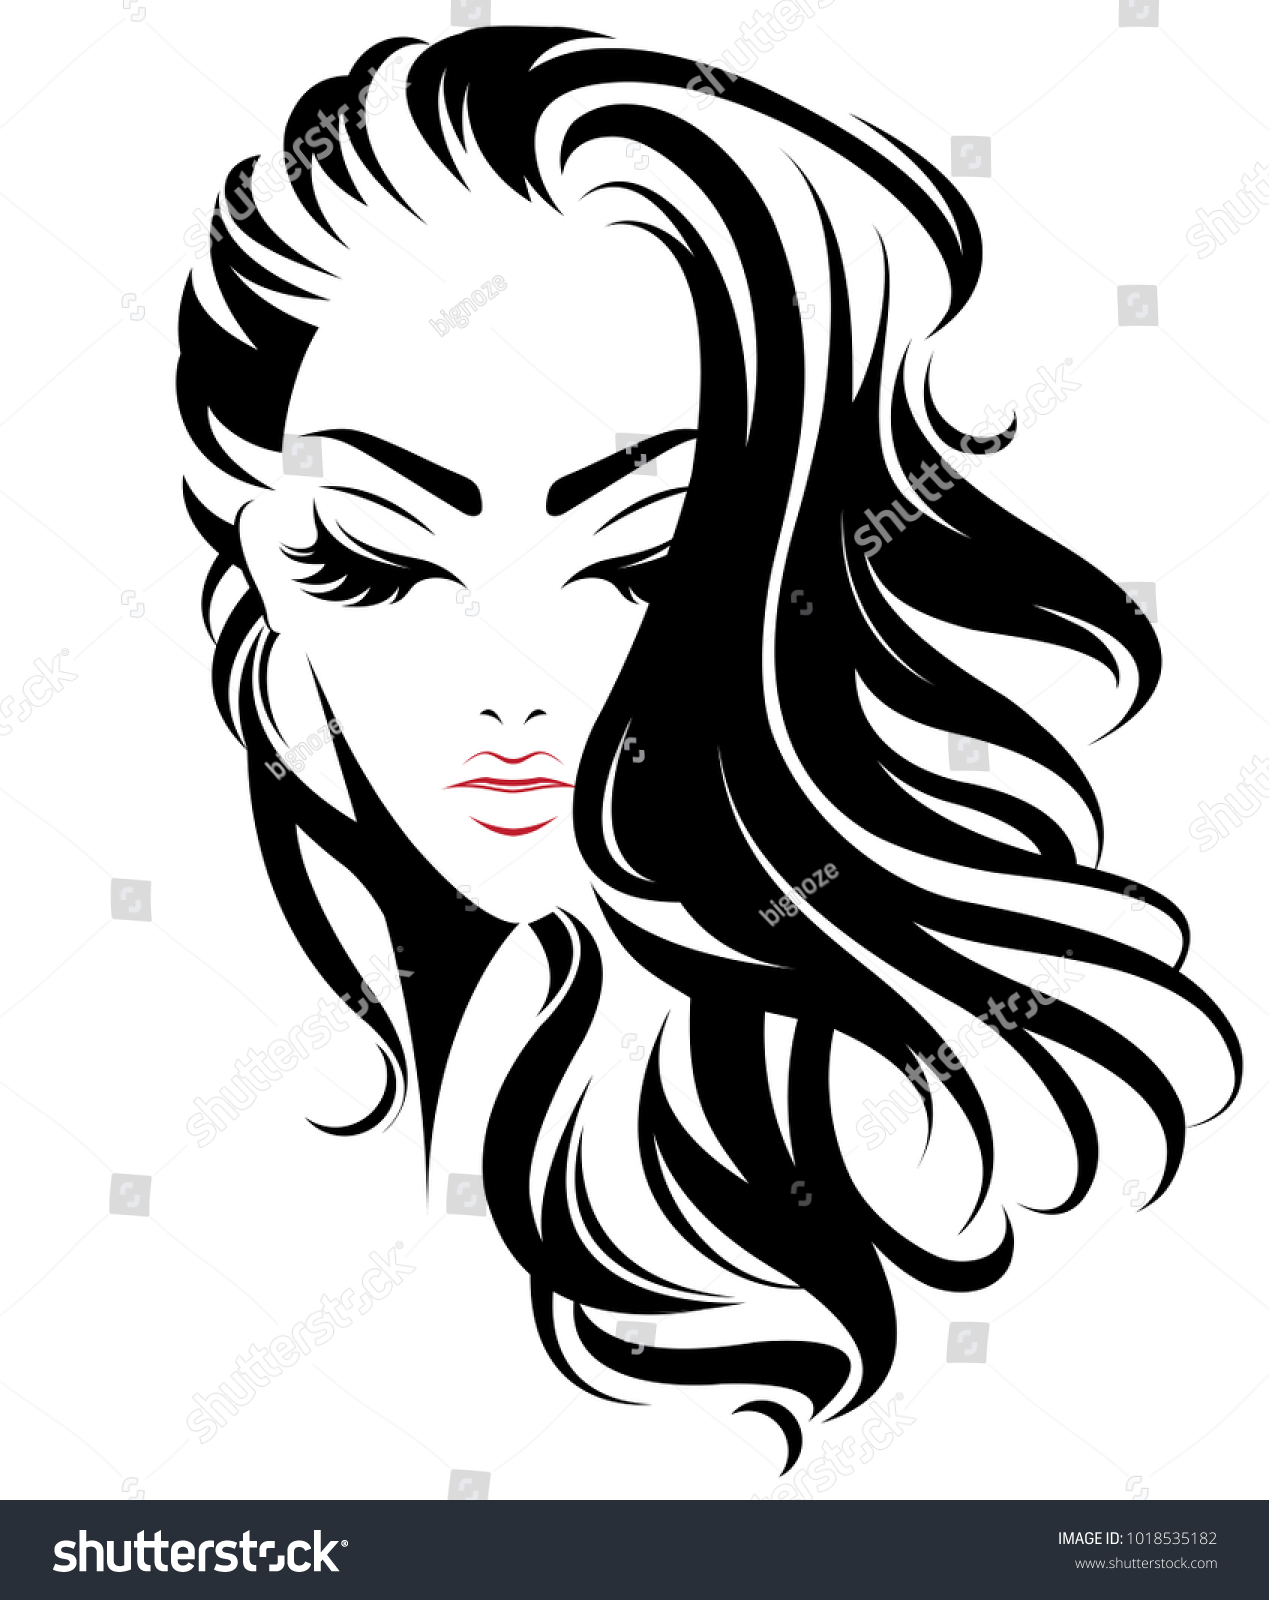 animated hair styles illustration of hair style icon logo 8468 | stock vector illustration of women long hair style icon logo women face on white background vector 1018535182